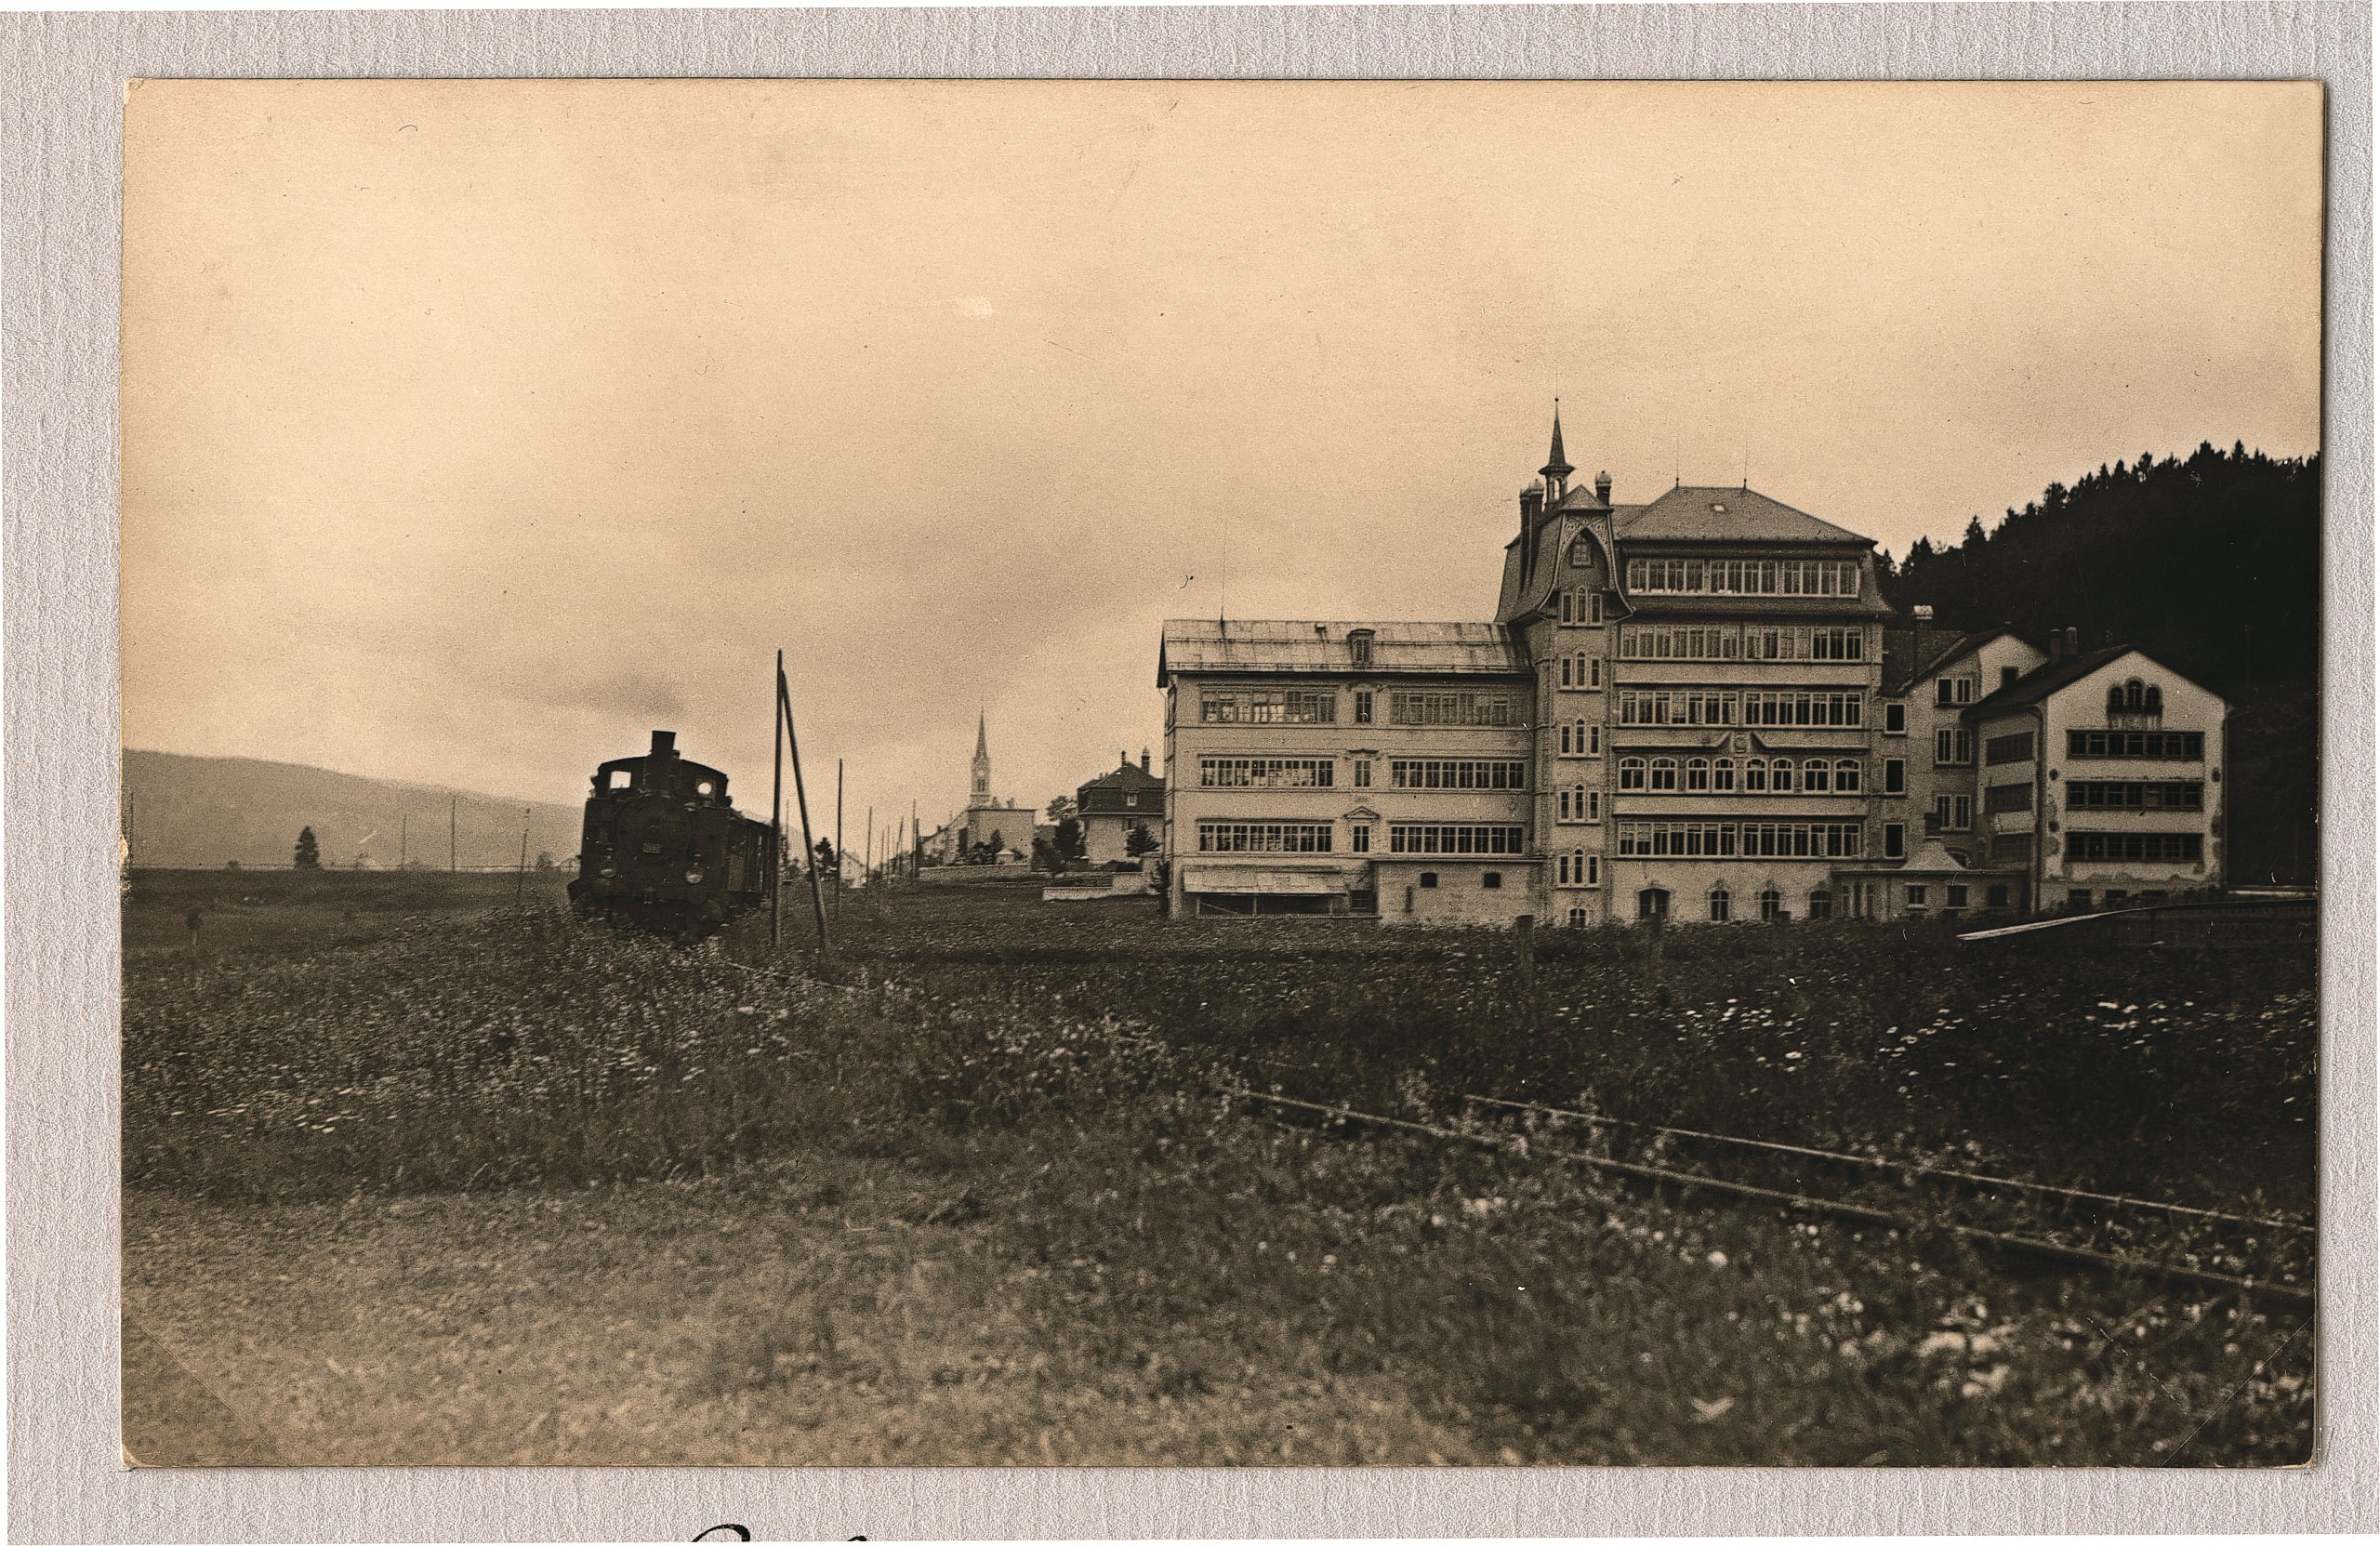 B&W picture of Jaeger-LeCoultre manufacture building in le Sentier around 1900 in The Flippin' History of the Reverso for A Collected Man